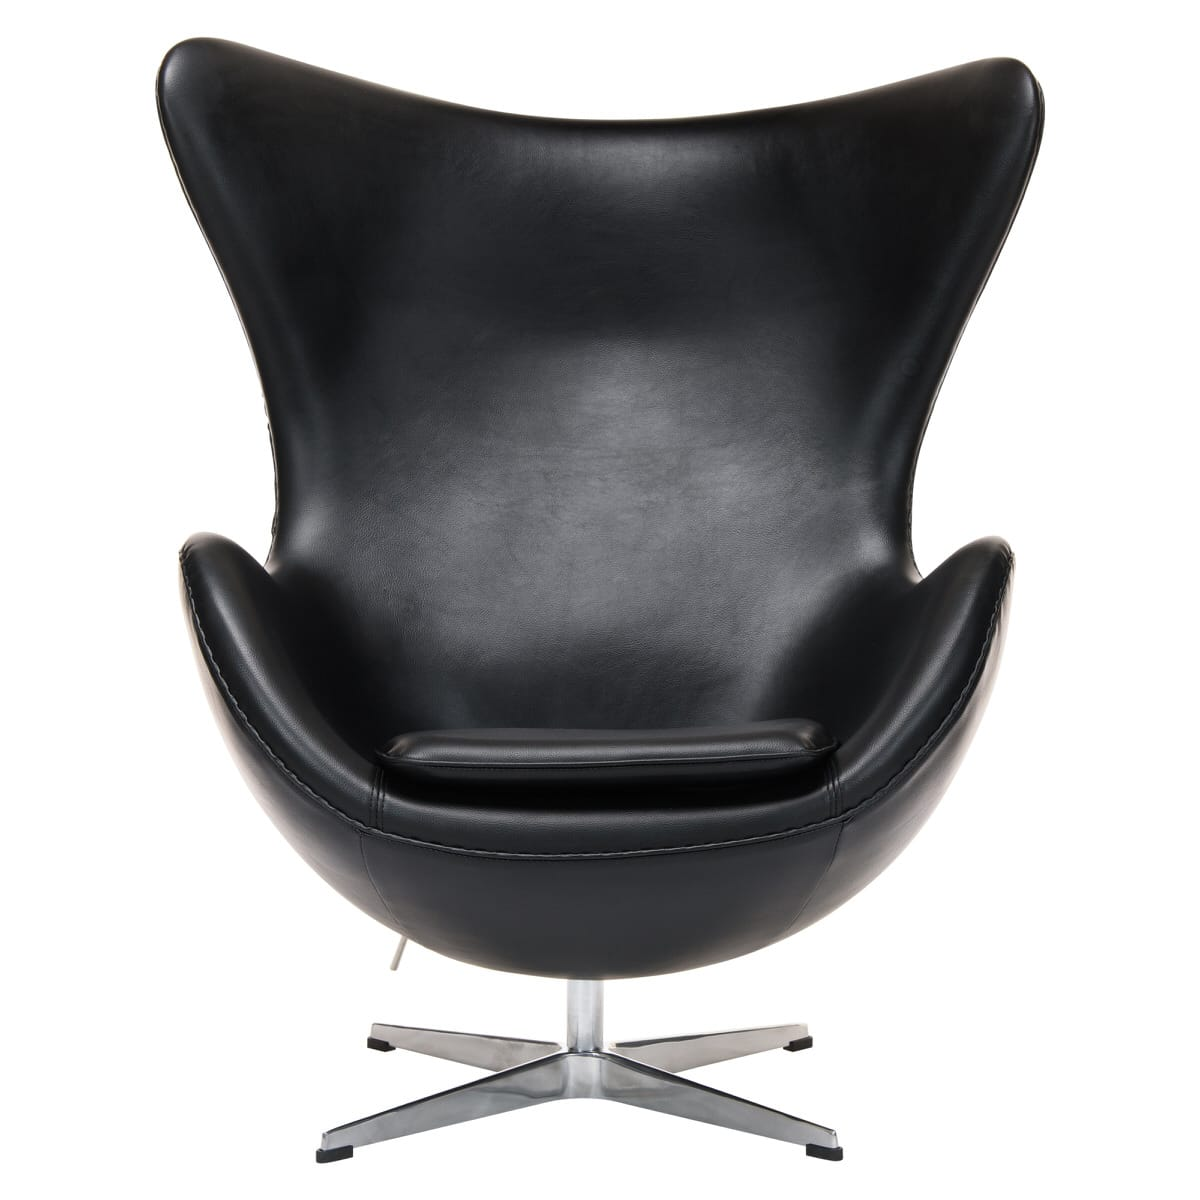 Super Egg Arne Jacobsen Style Black Leather Chair By Leisuremod Pabps2019 Chair Design Images Pabps2019Com